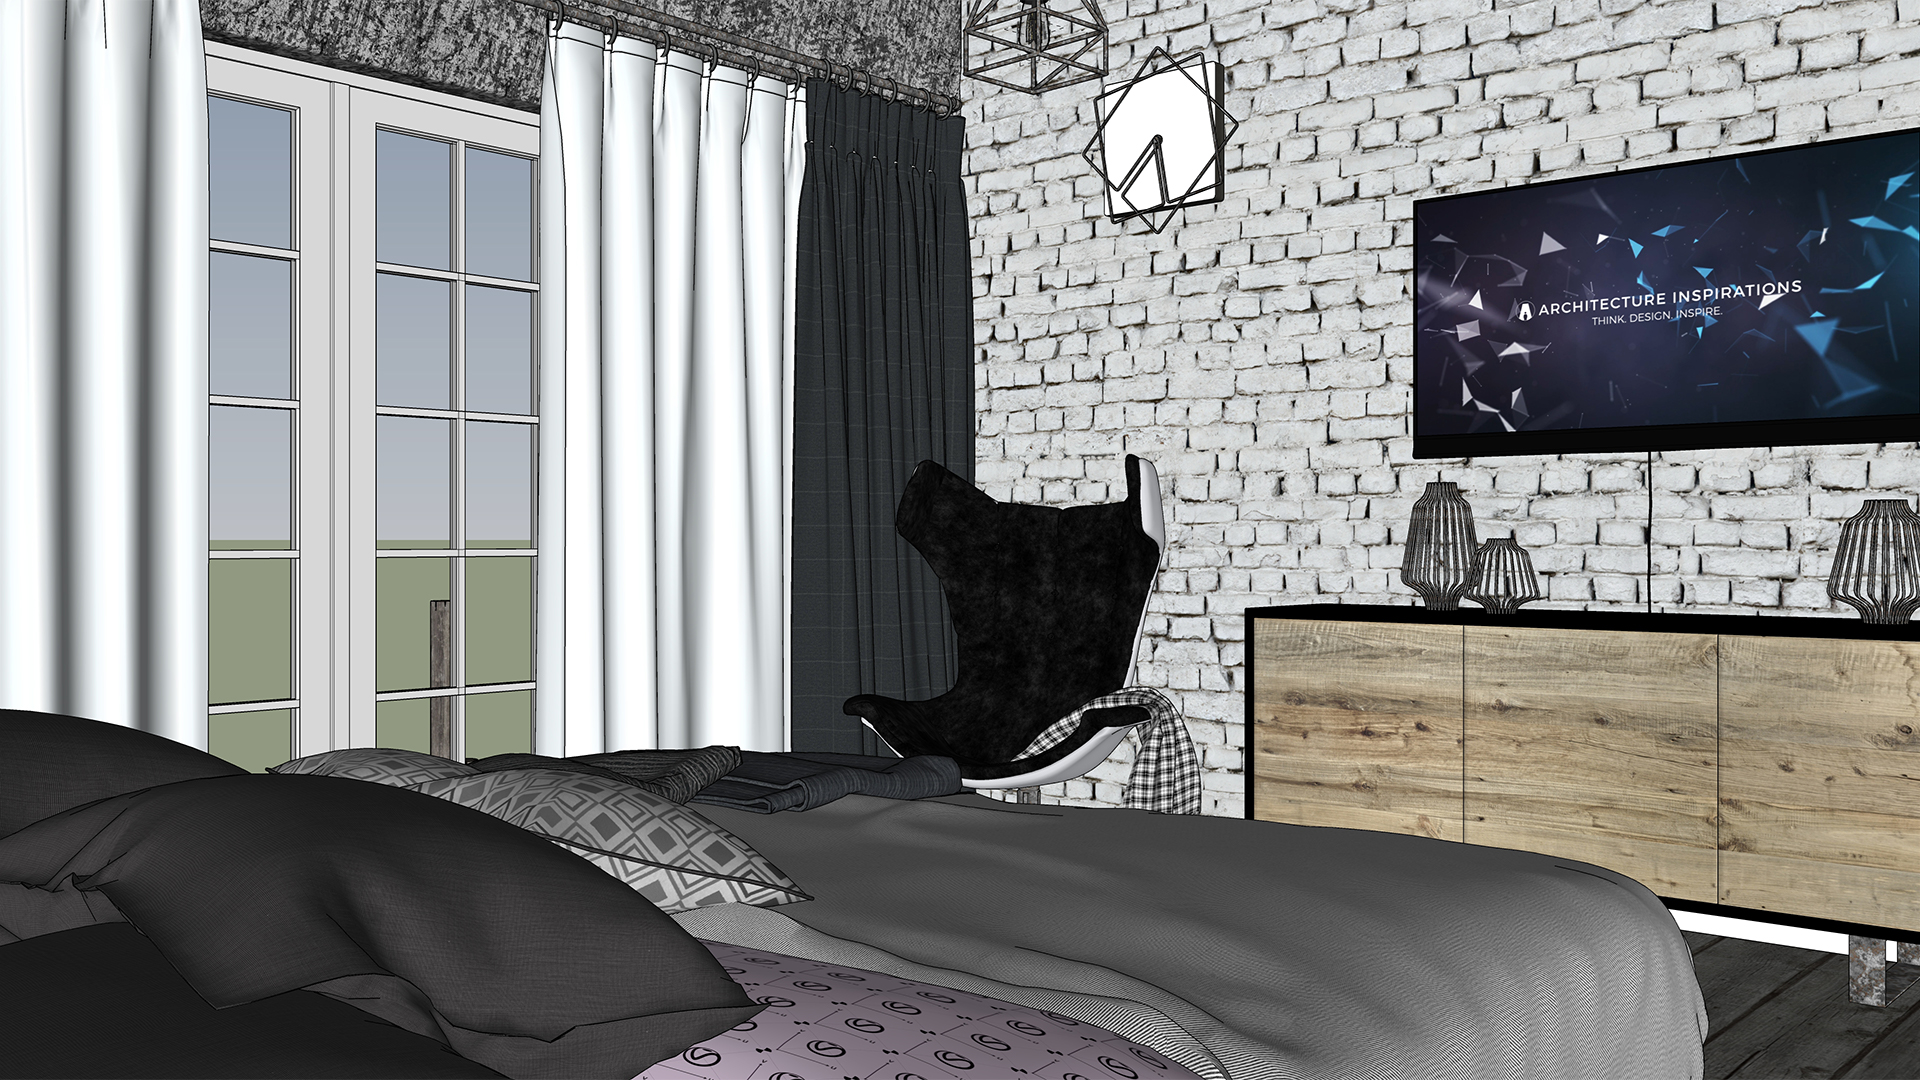 Industrial Bedroom View 2 Night Screenshot 1920.jpg